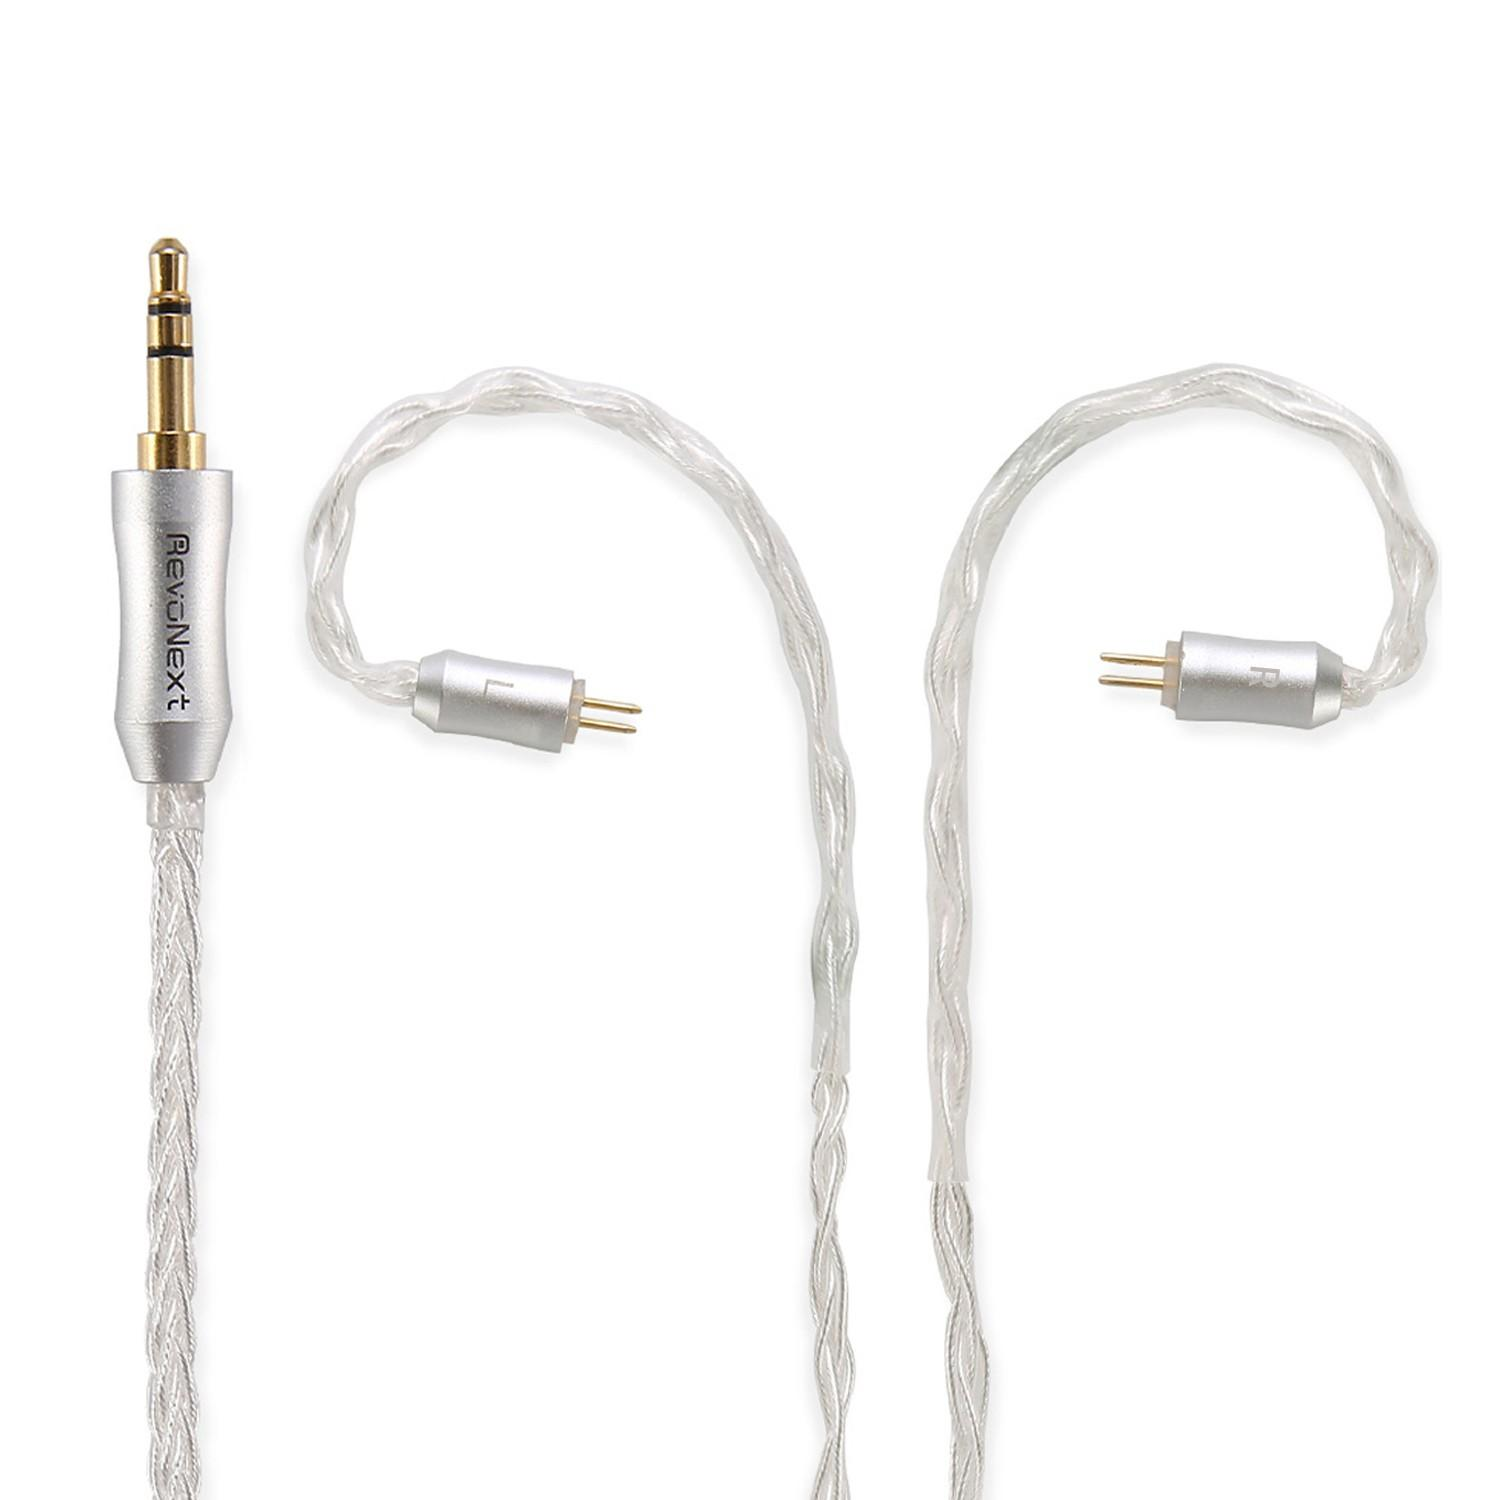 RevoNext customized earbud cable factory bulk buy